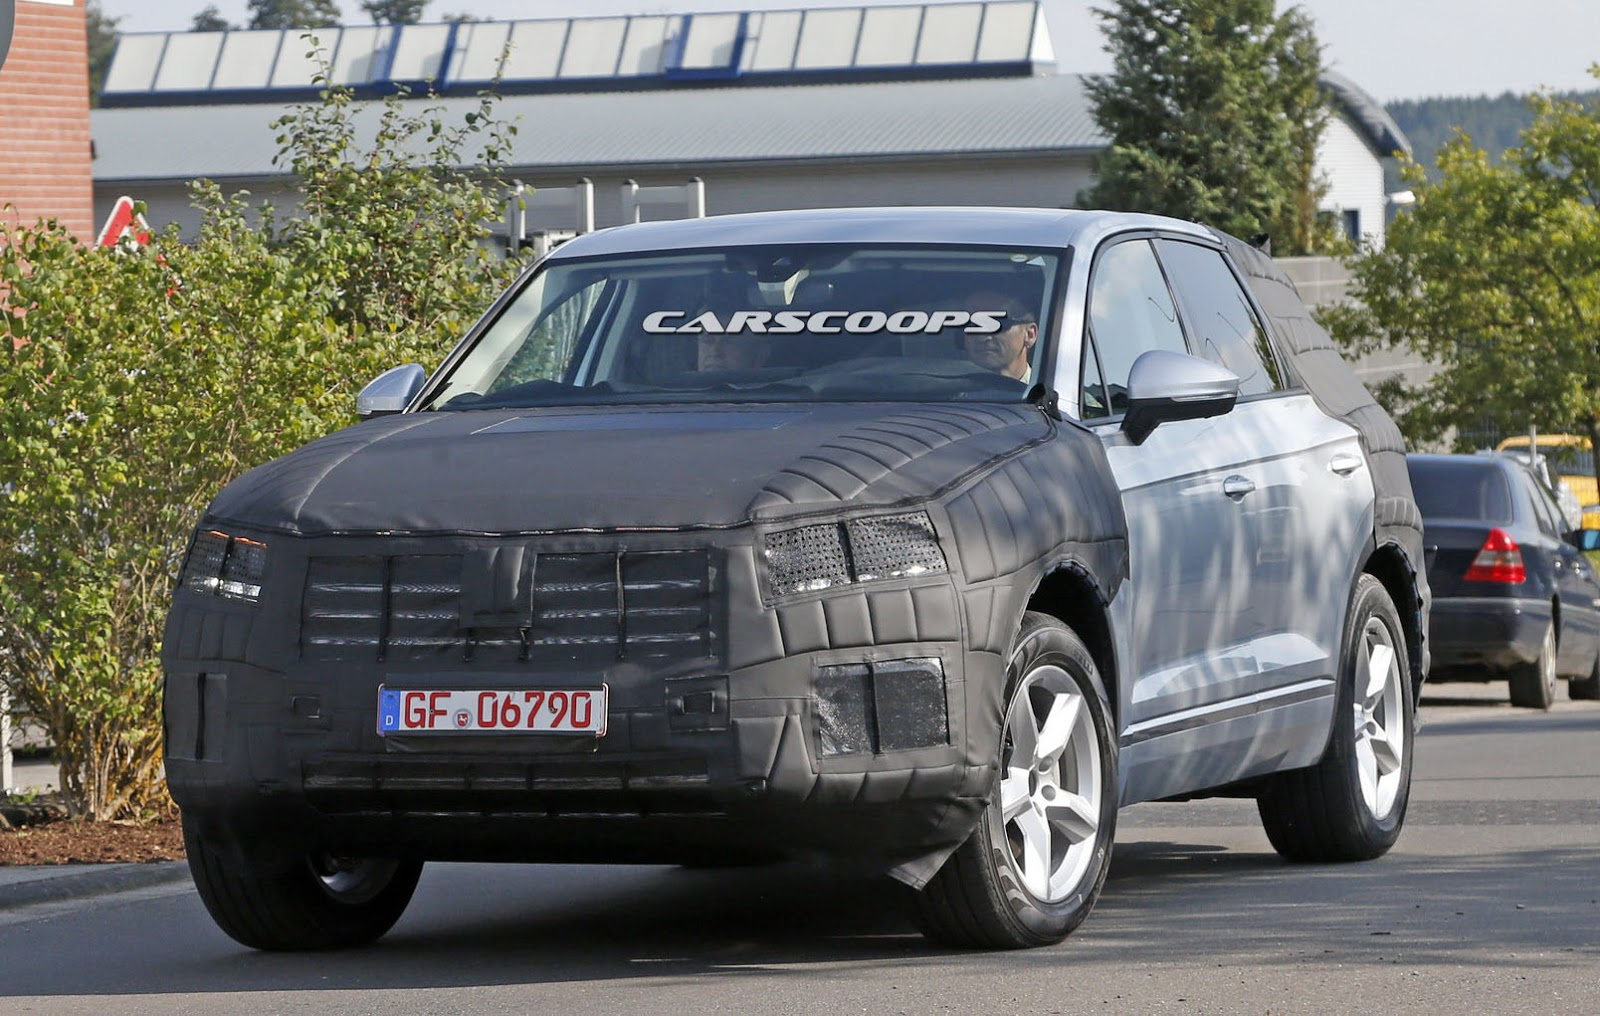 next generation volkswagen touareg scooped with updated design carscoops. Black Bedroom Furniture Sets. Home Design Ideas